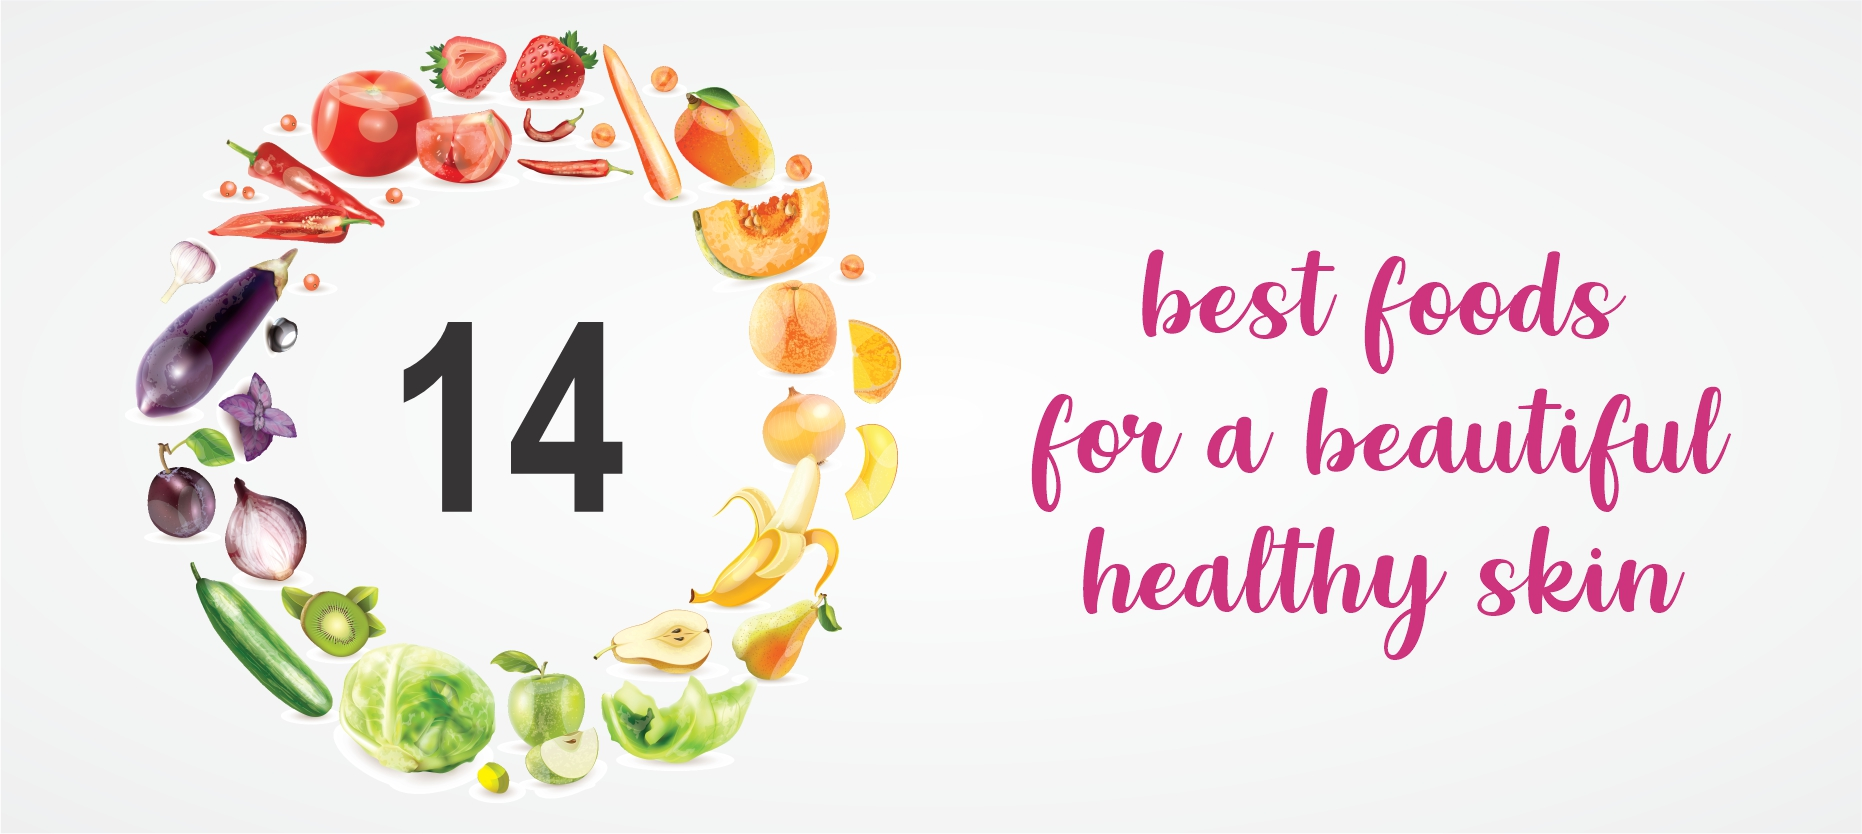 Top Foods to Eat for a Healthy, Beautiful Skin